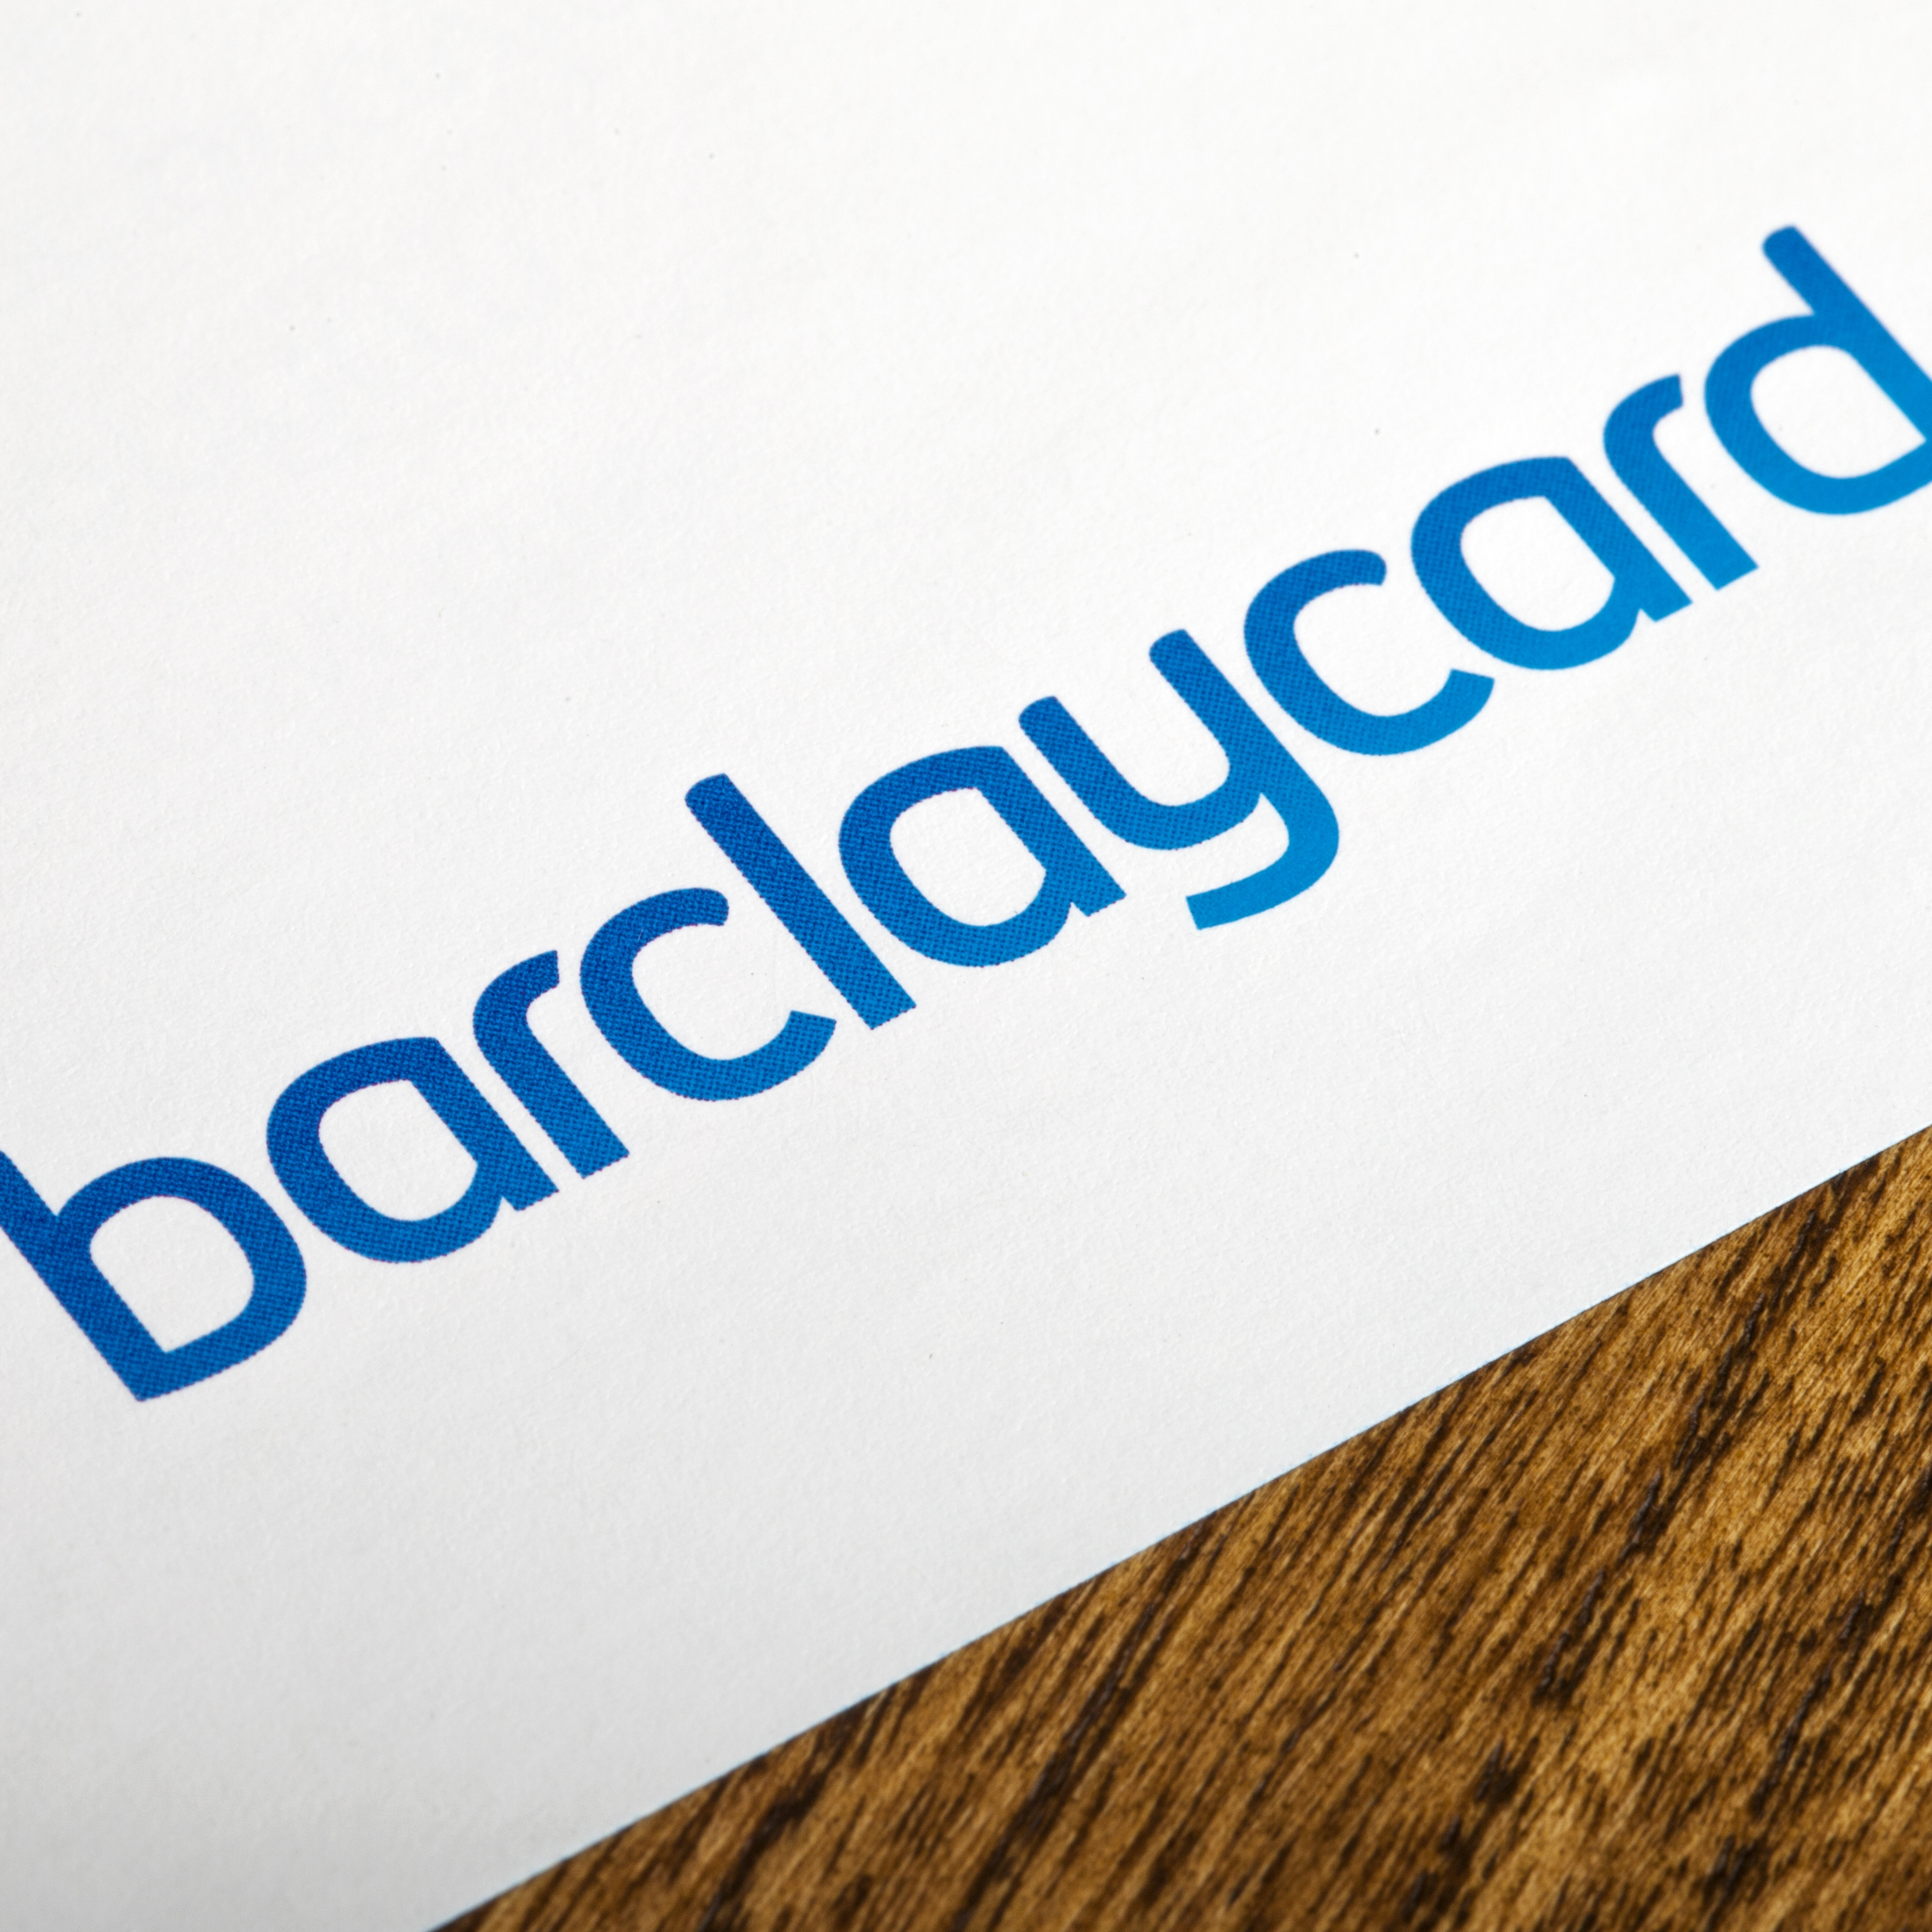 Barclaycard gives rebates to 1,000s of customers after it 'may have' set their credit limits too high